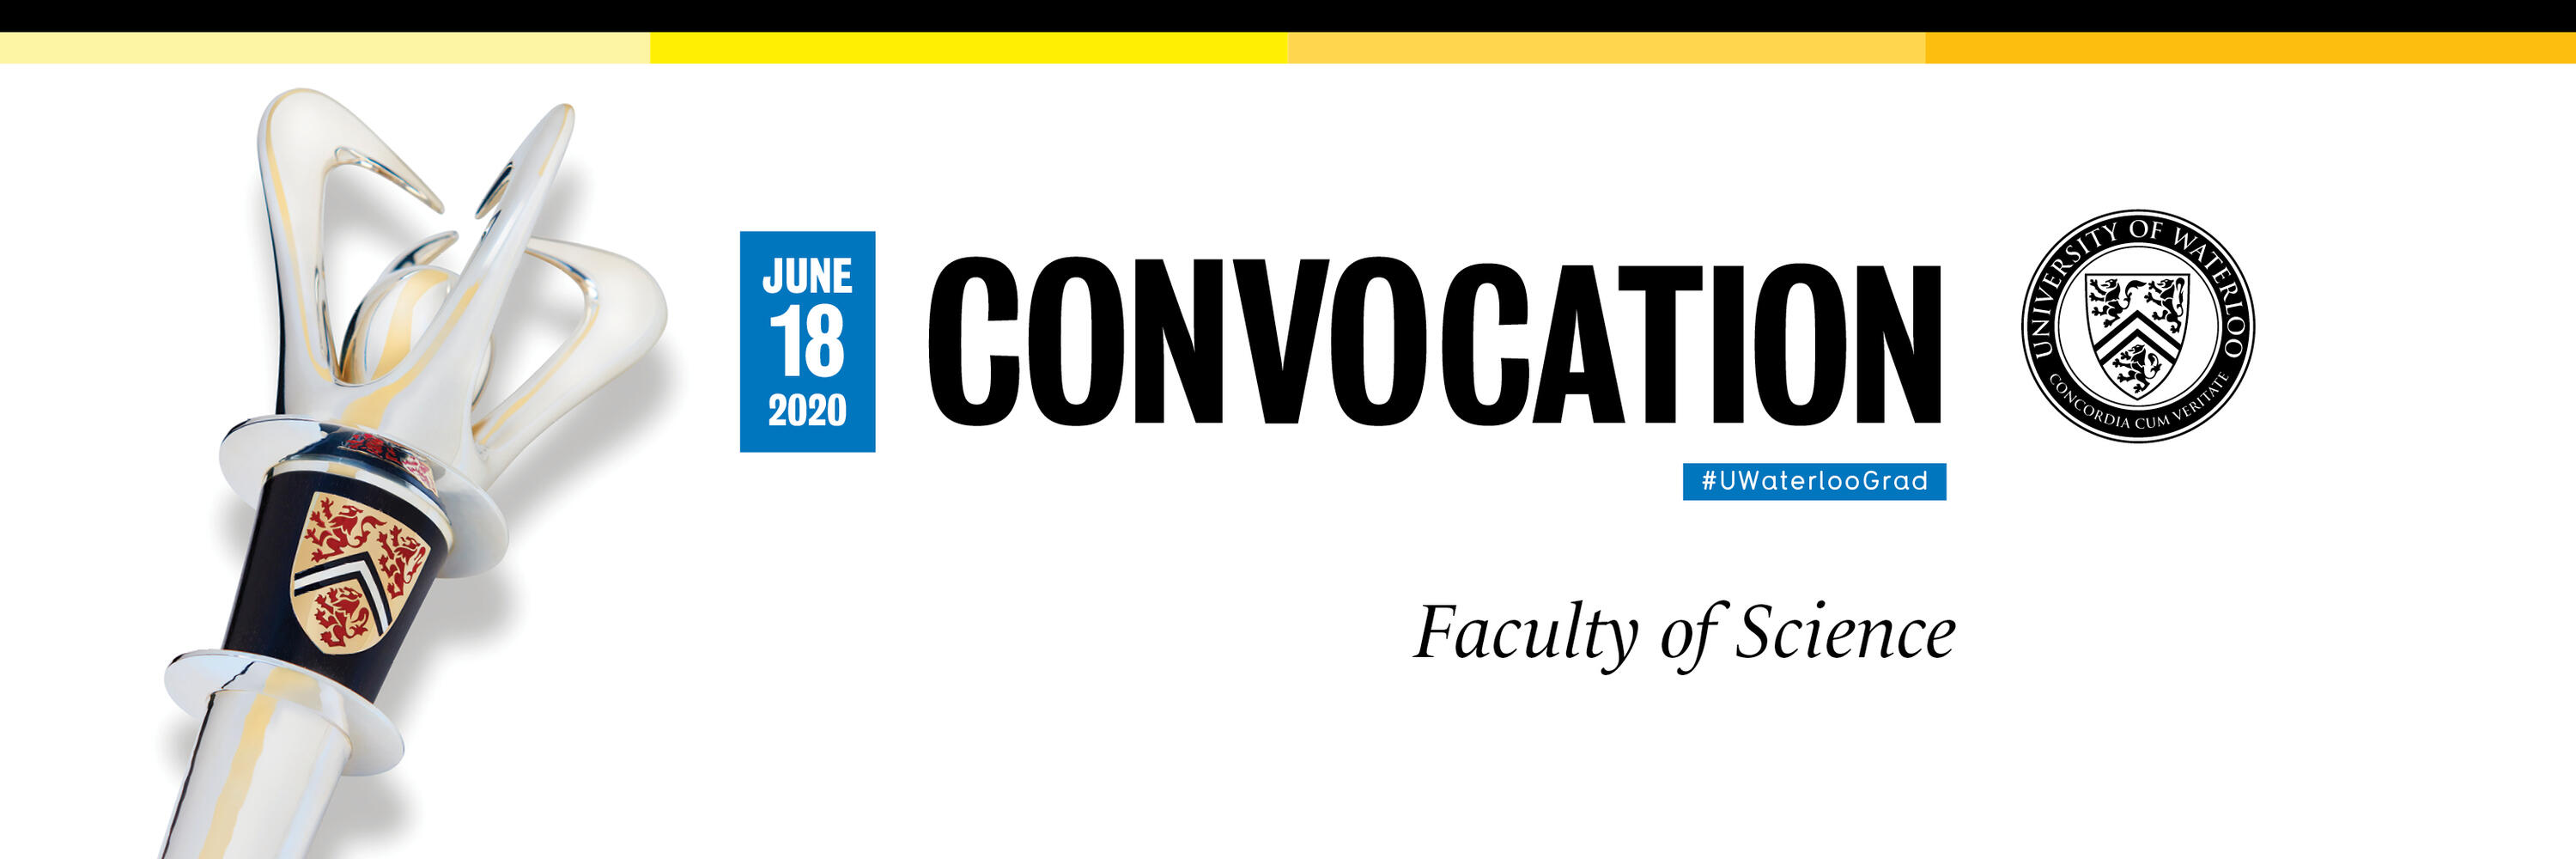 Convocation June 18 Faculty of Science with image of Waterloo ceremonial mace